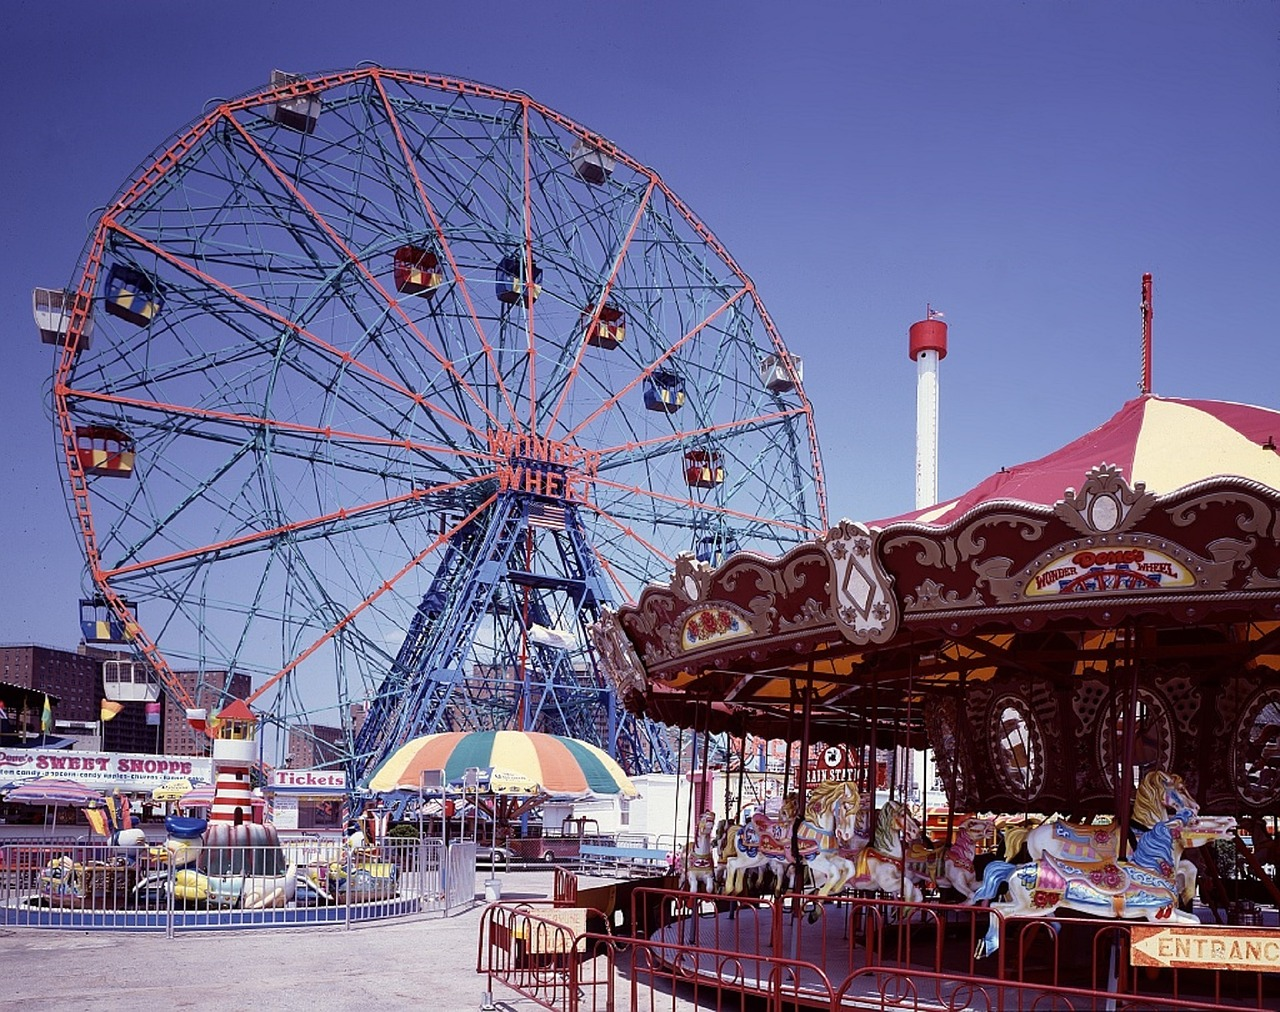 Ferris wheel at Coney Island, New York City